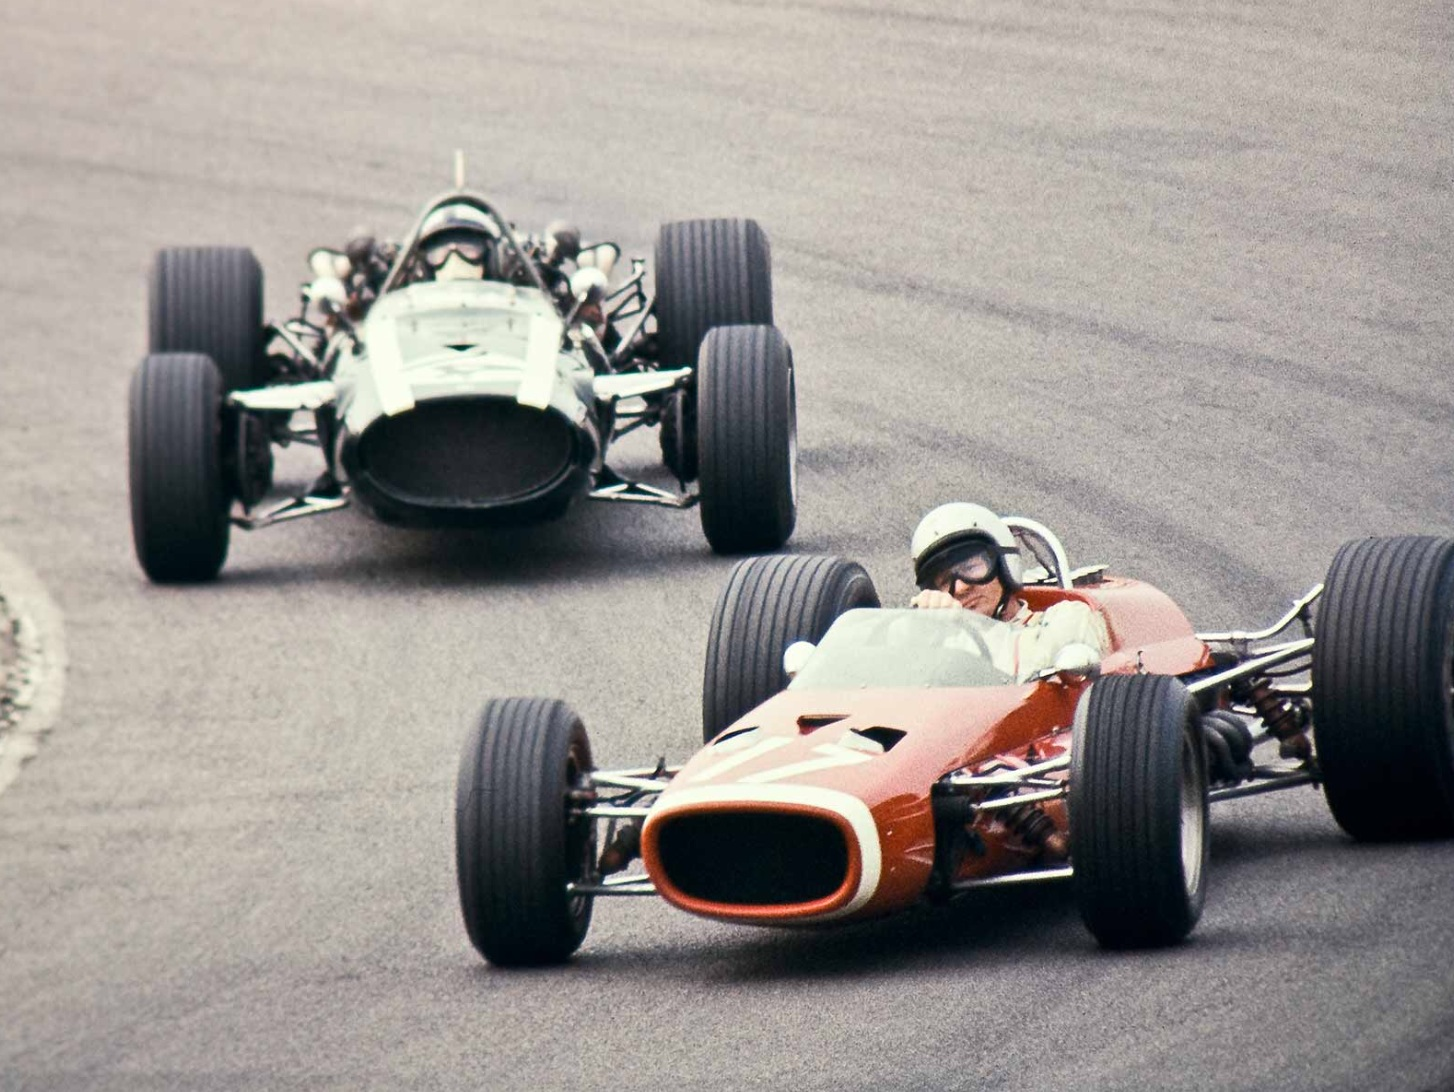 Bruce in m4b brm ahead of pedro rodriguez cooper t81 maserati it was the debut of the lotus 49 ford clark won the race in chapman s jewel